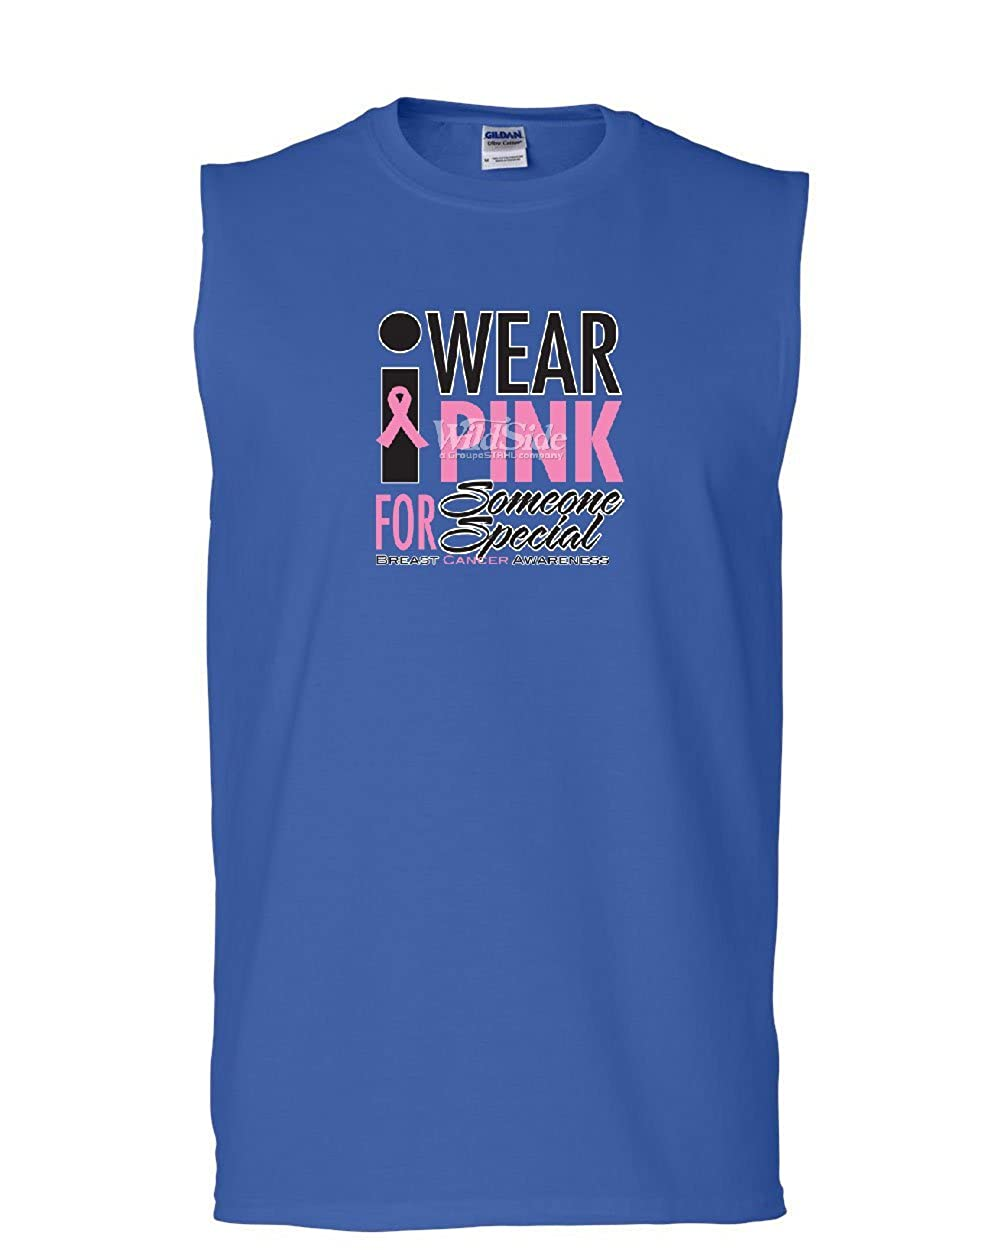 Tee Hunt I Wear Pink for Someone Special Muscle Shirt Breast Cancer Awareness Sleeveless